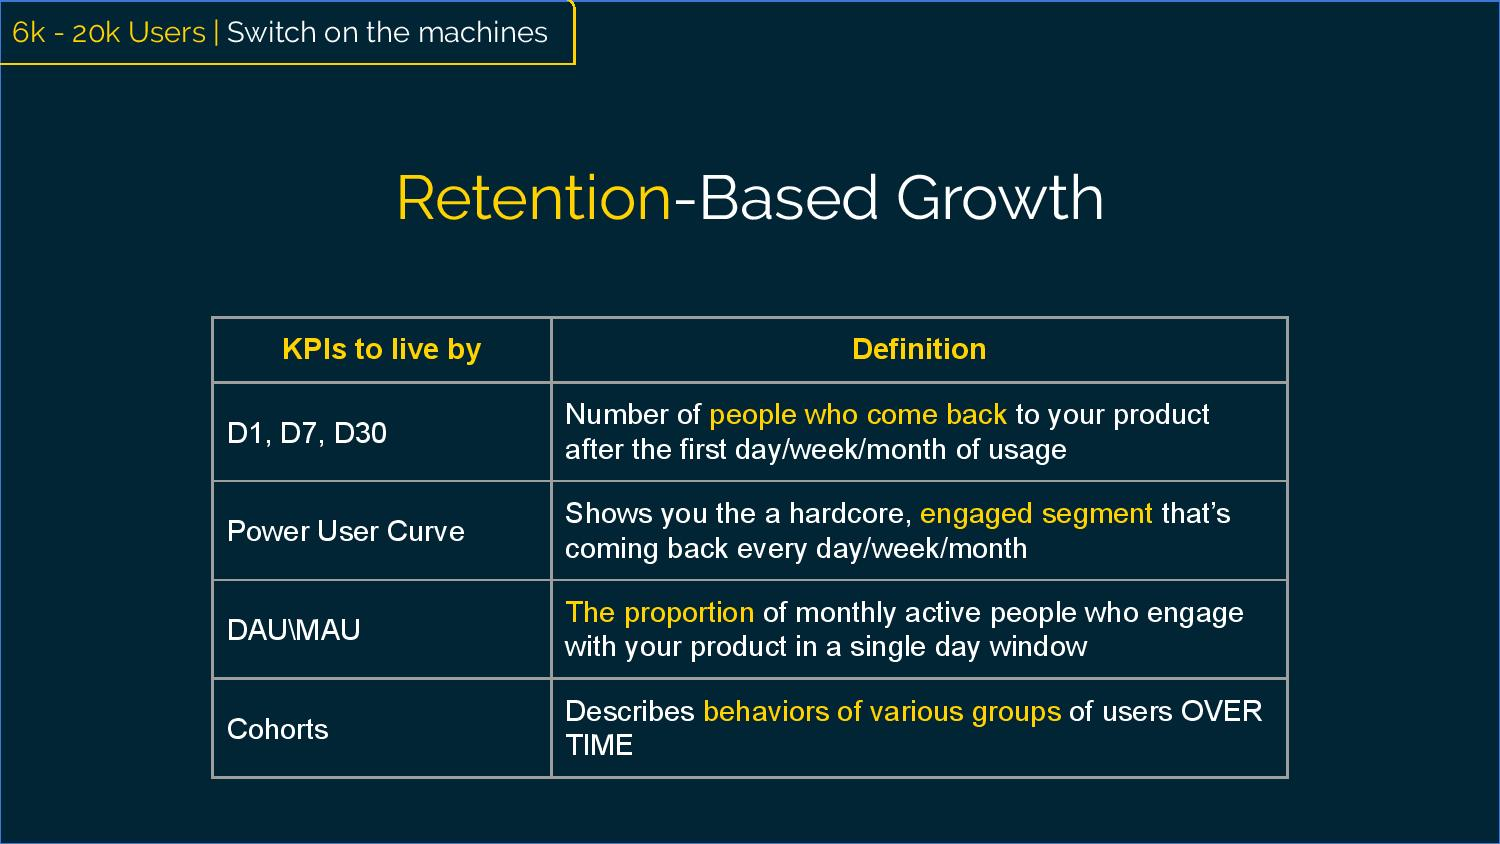 Retention-Based Growth KPIs to live by D1, D7 and D 30 = Number of people who come back to your product Power Users Curve = shows you the hardcore, engaged segment DAU/MAU = The proportion of monthly users who engage with your product daily Cohorts = Discover the behaviors of various groups of users over time